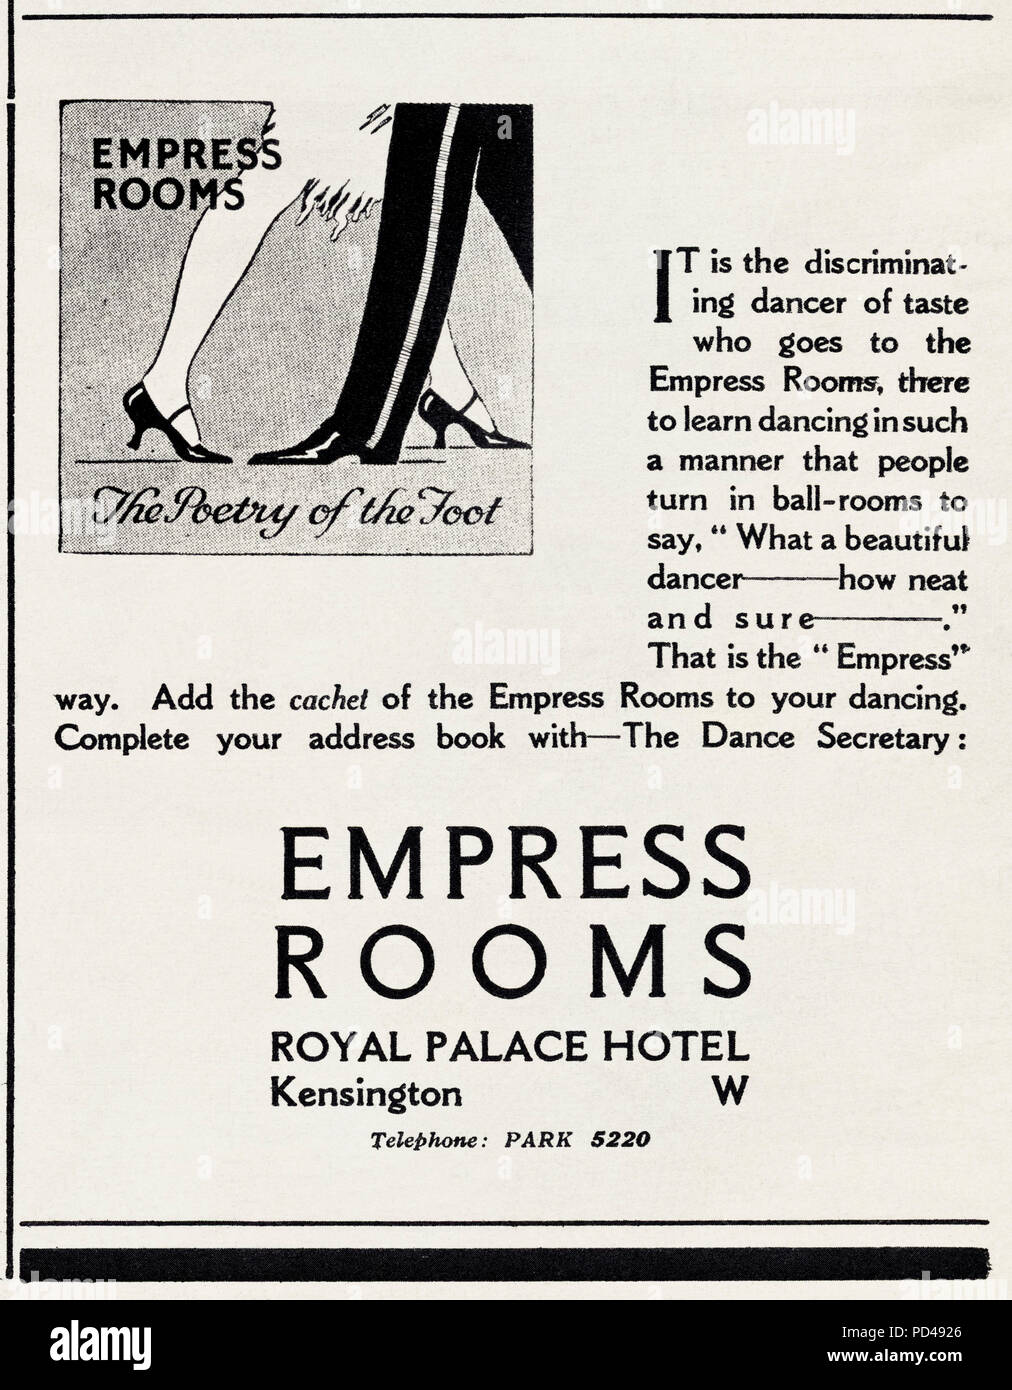 1920s old vintage original advert advertising dancing at the Empress Rooms at Royal Palace Hotel Kensington London England UK in English magazine circa 1924 - Stock Image